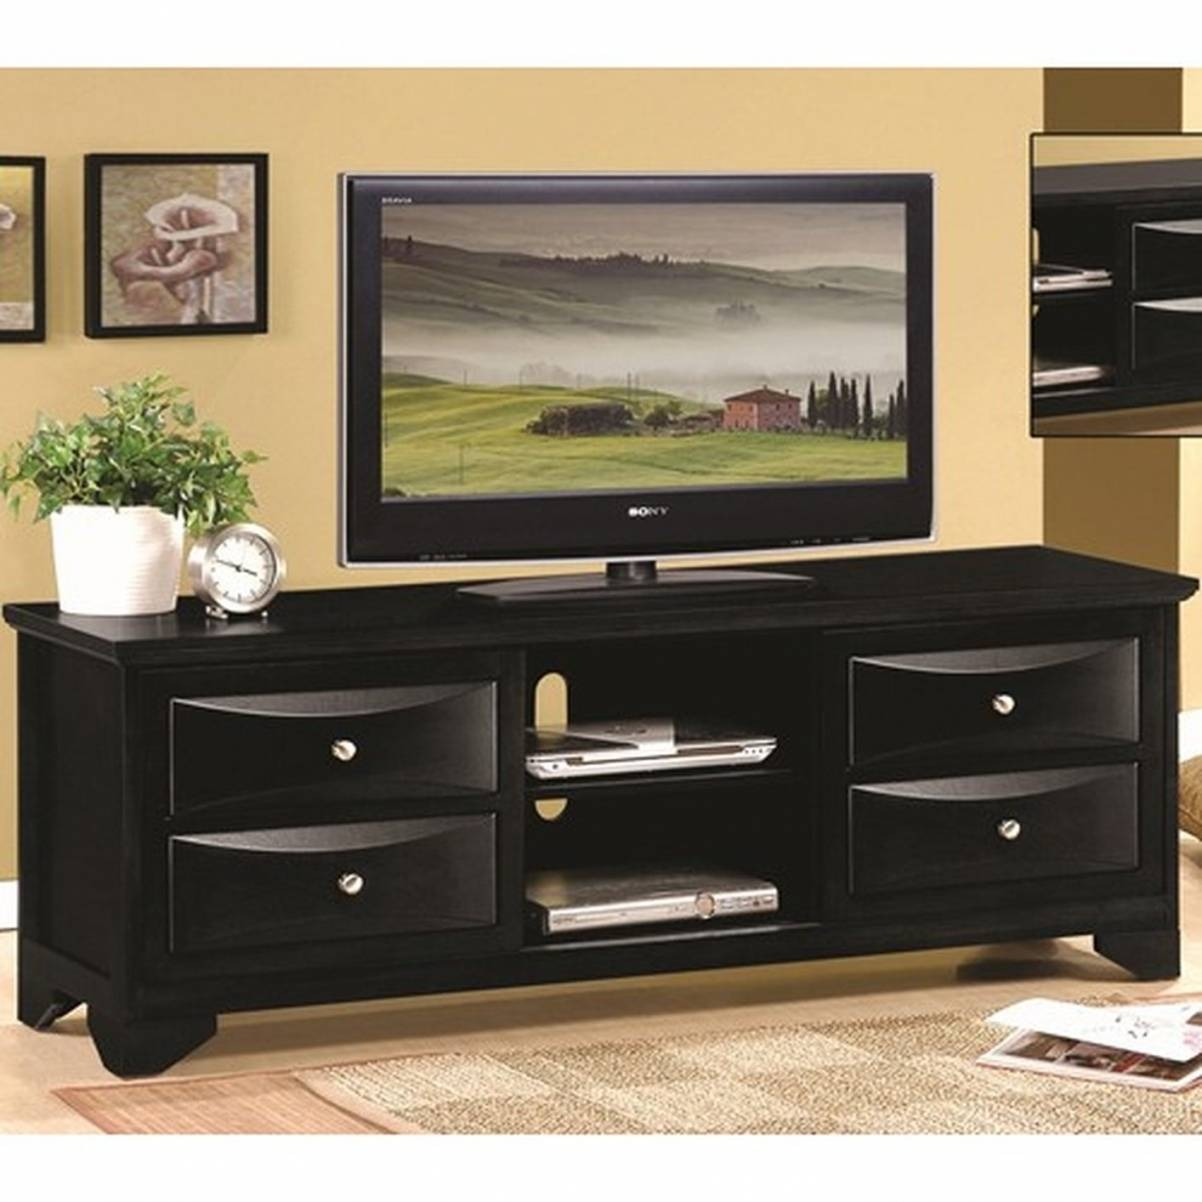 Luxury Tv Stands Big Lots Fresh | Vgmnation for Luxury Tv Stands (Image 12 of 15)